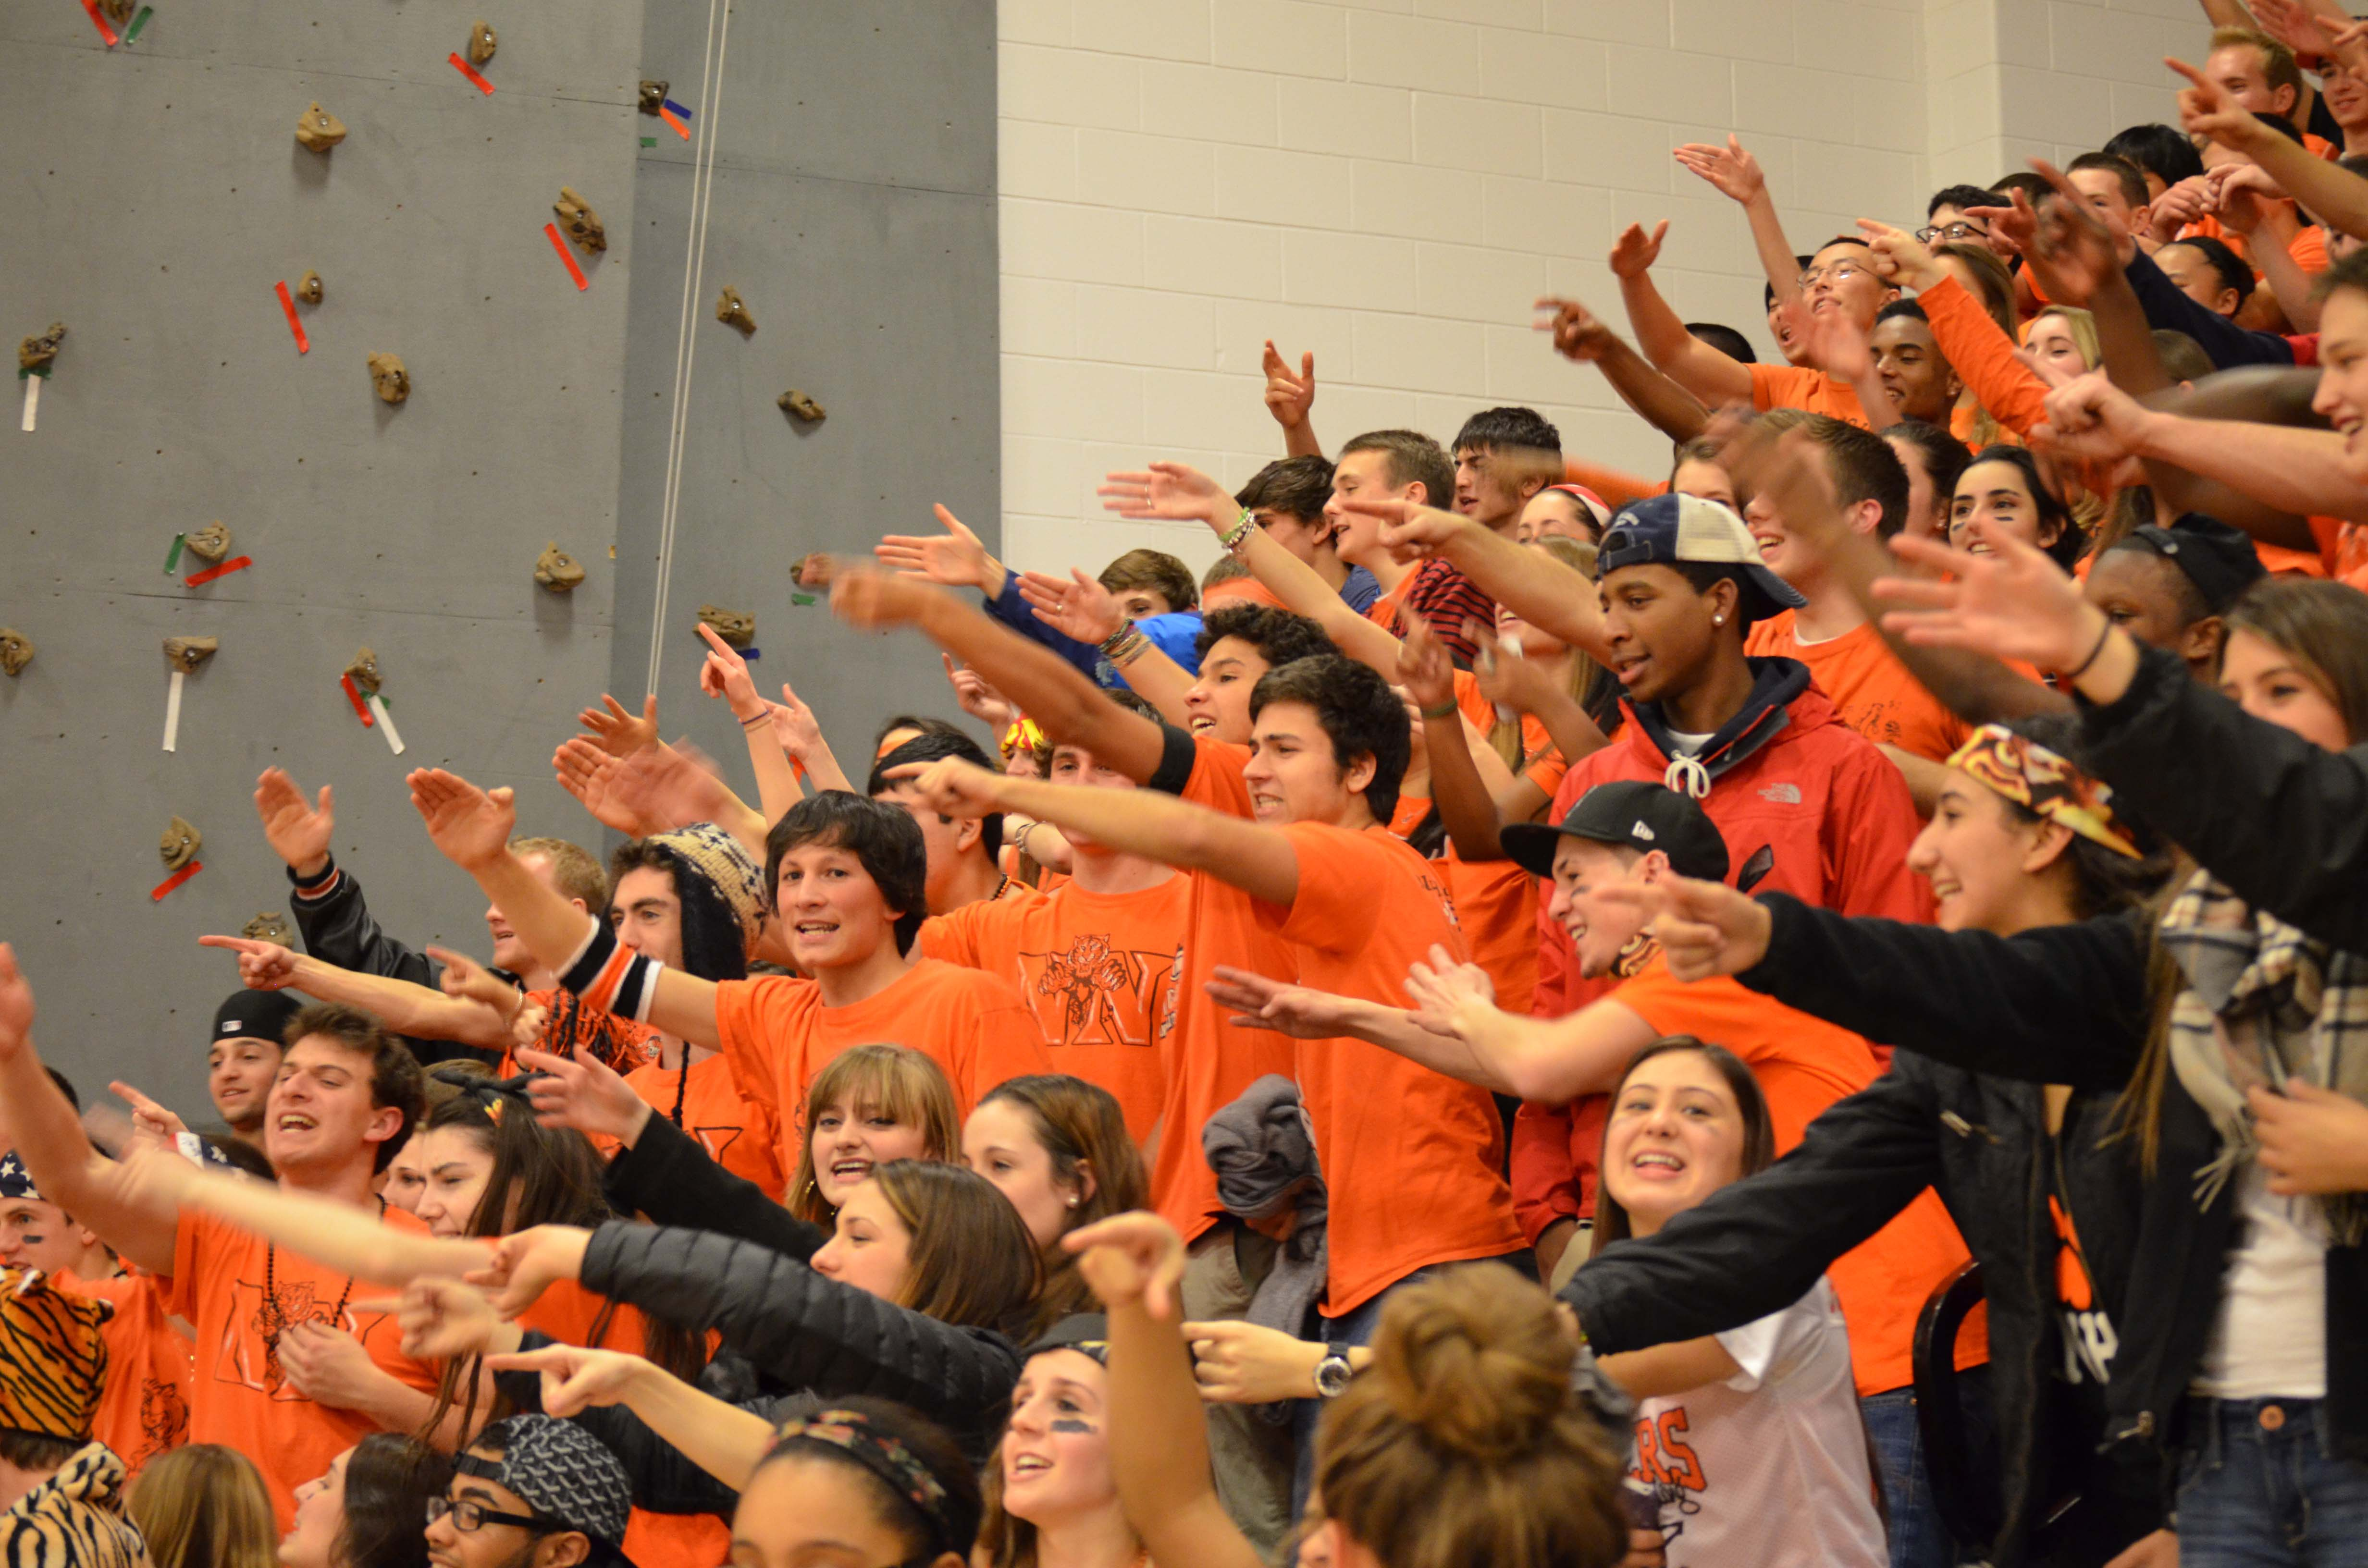 During a boys' basketball game, senior cheer on the Tigers as part of the 6th Man tradition.